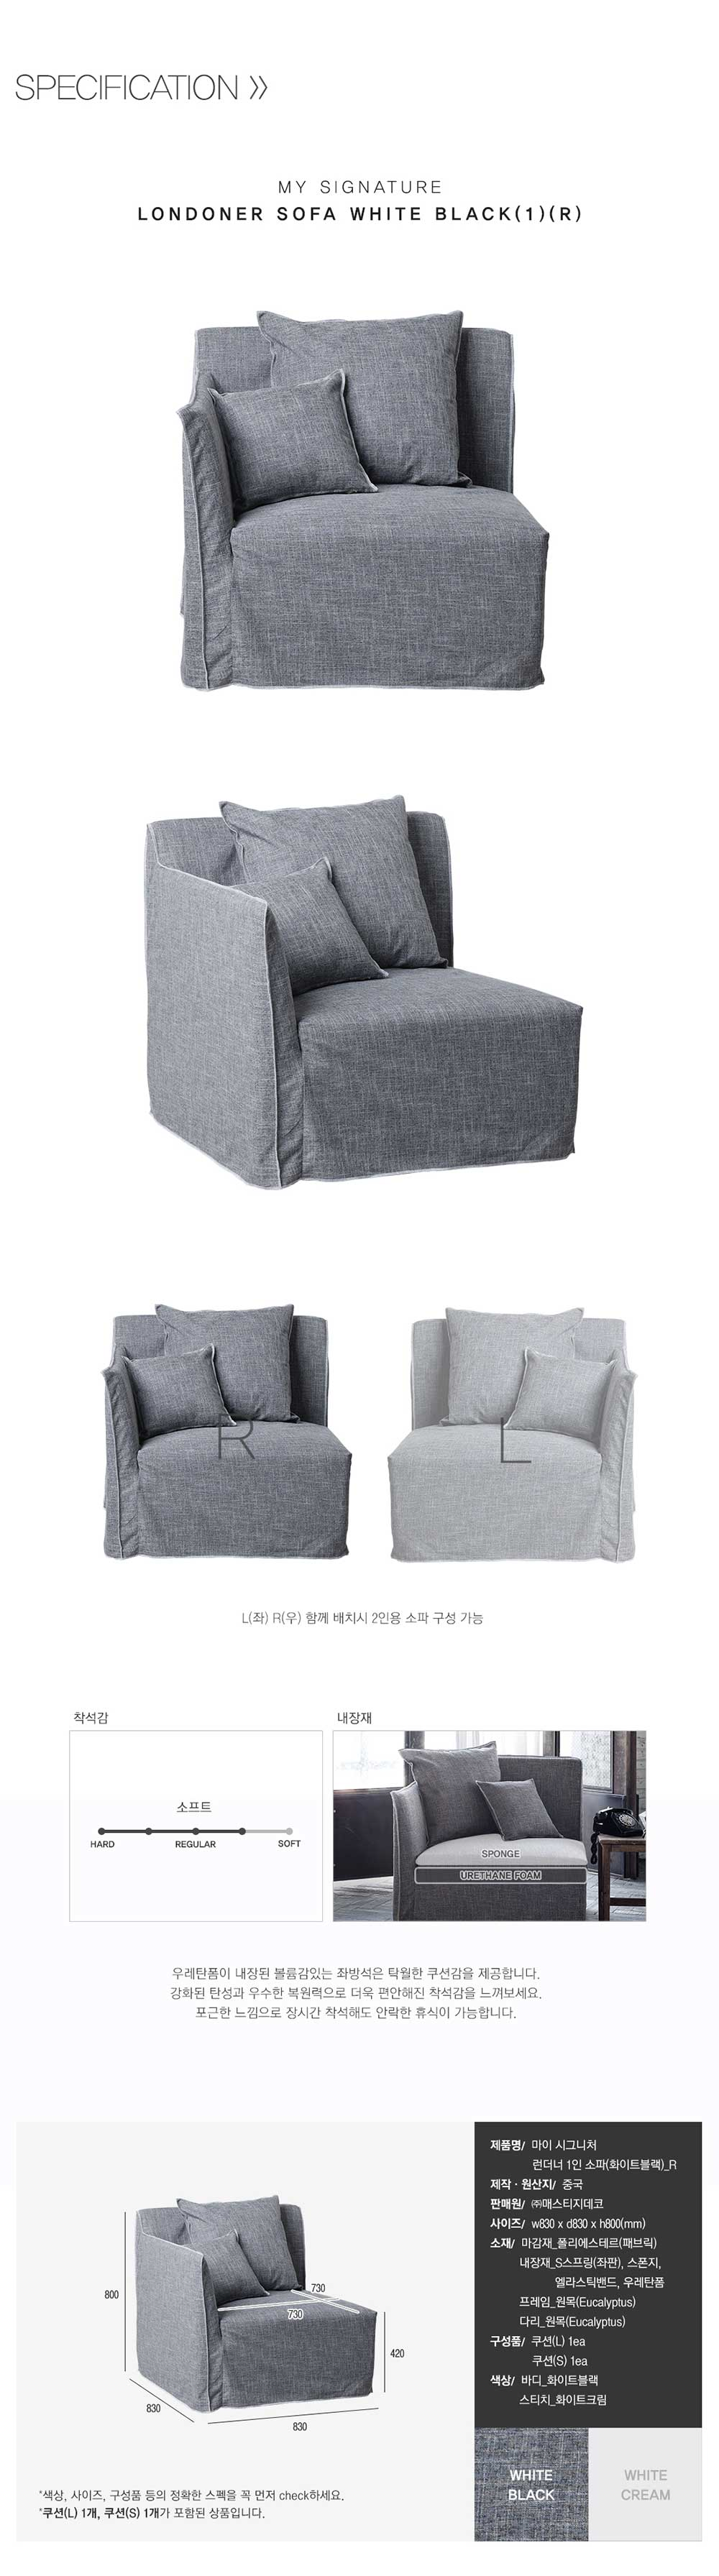 Londoner_Kinfolk_Industrial_Armchair_Sofa_(RIGHT)_(White Black)_Furniture_Online_Singapore_Scenery_2_by_born_in_colour